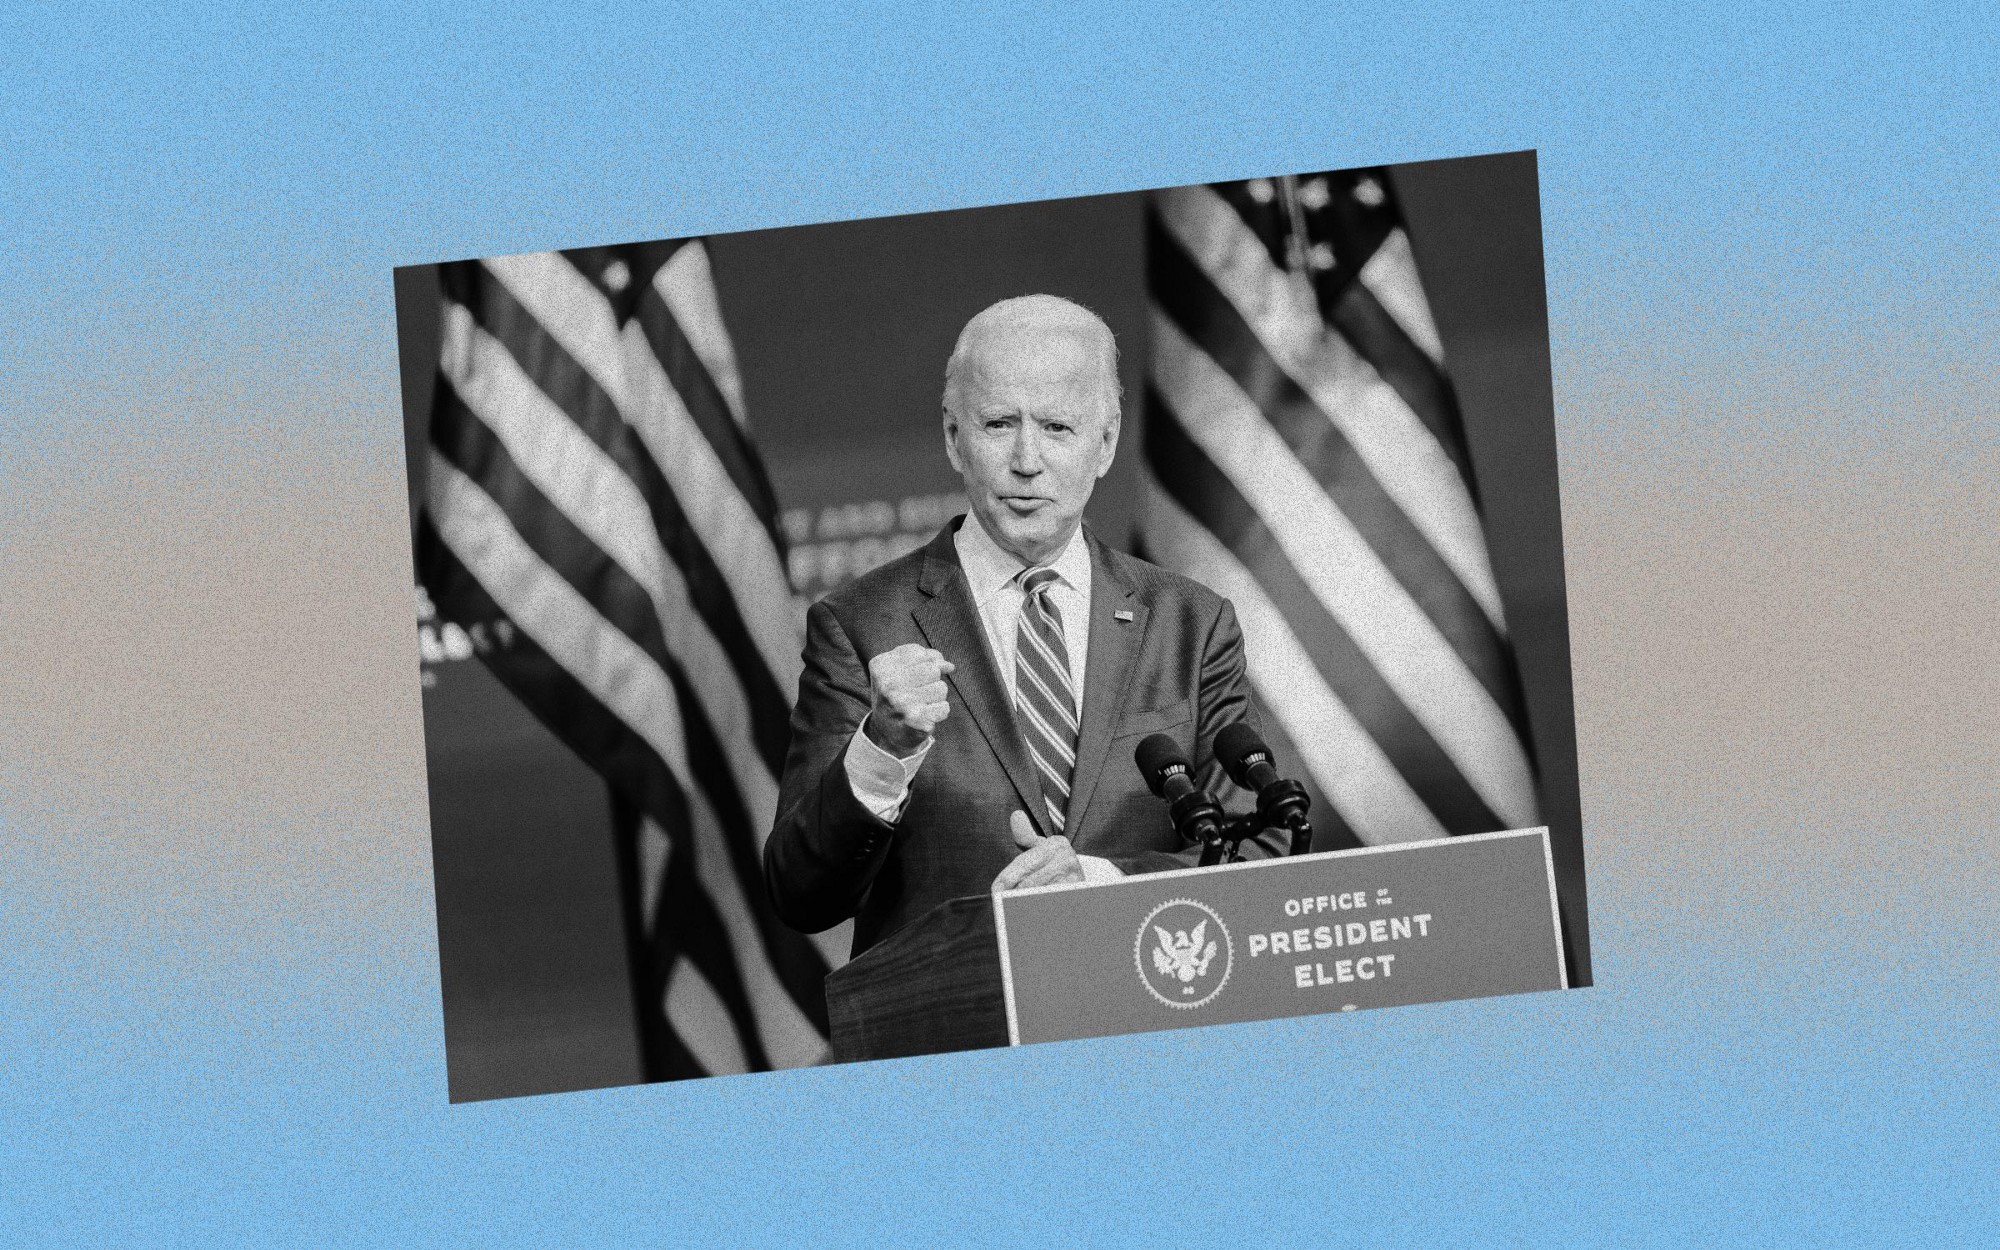 Black and white image of Joe Biden giving a speech against a blue and silver background.